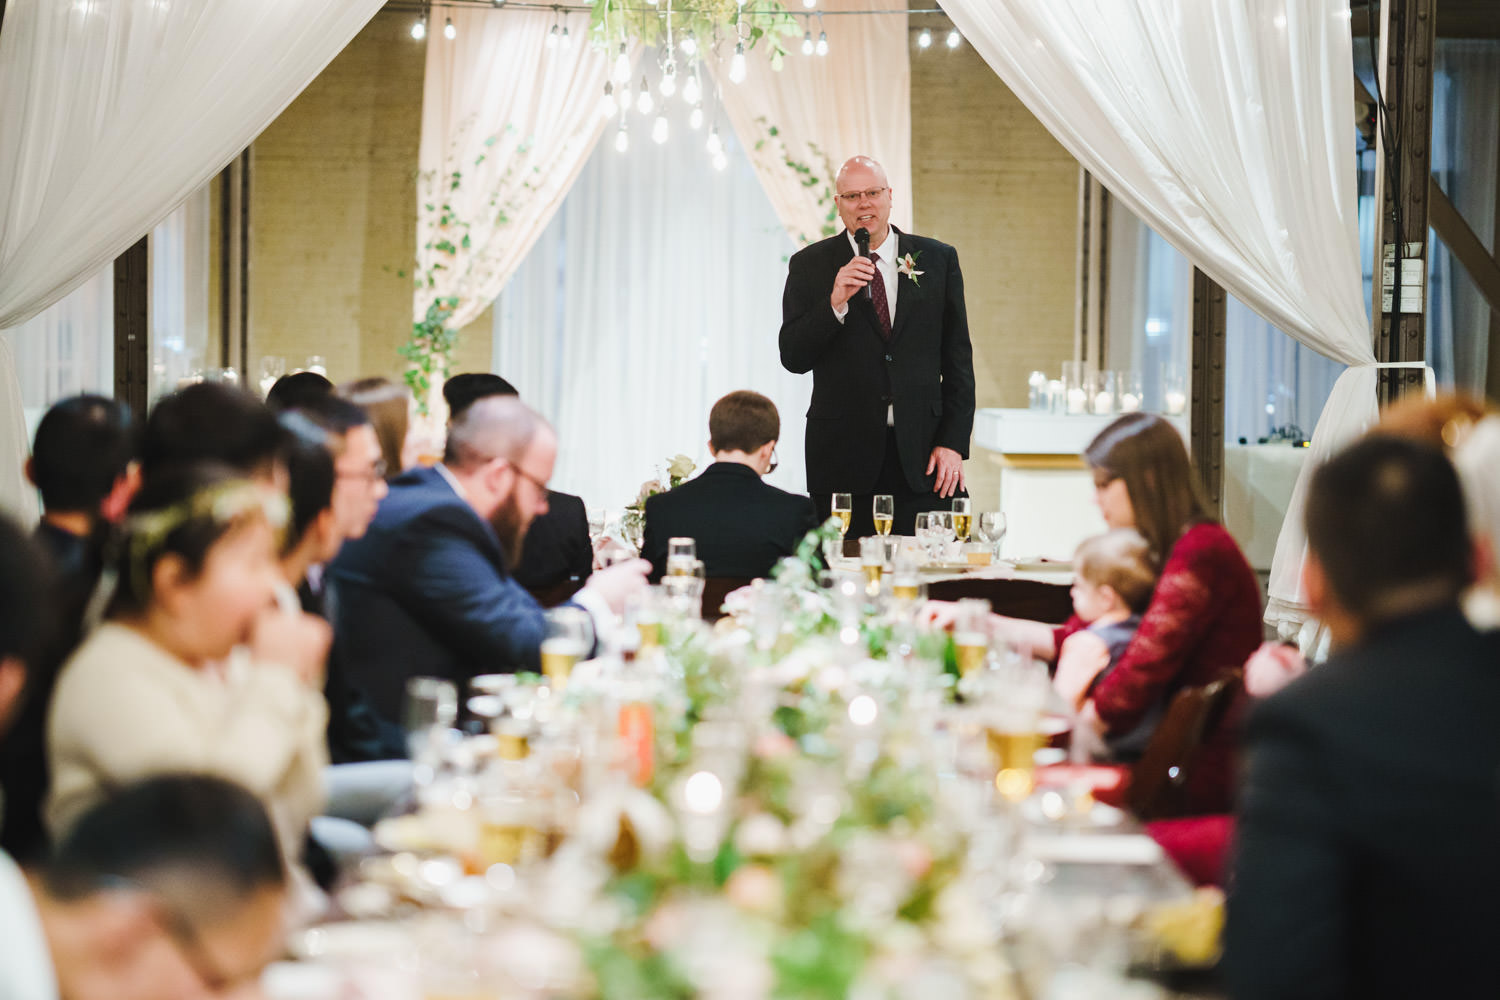 Pierpont Place wedding wedding toast photo